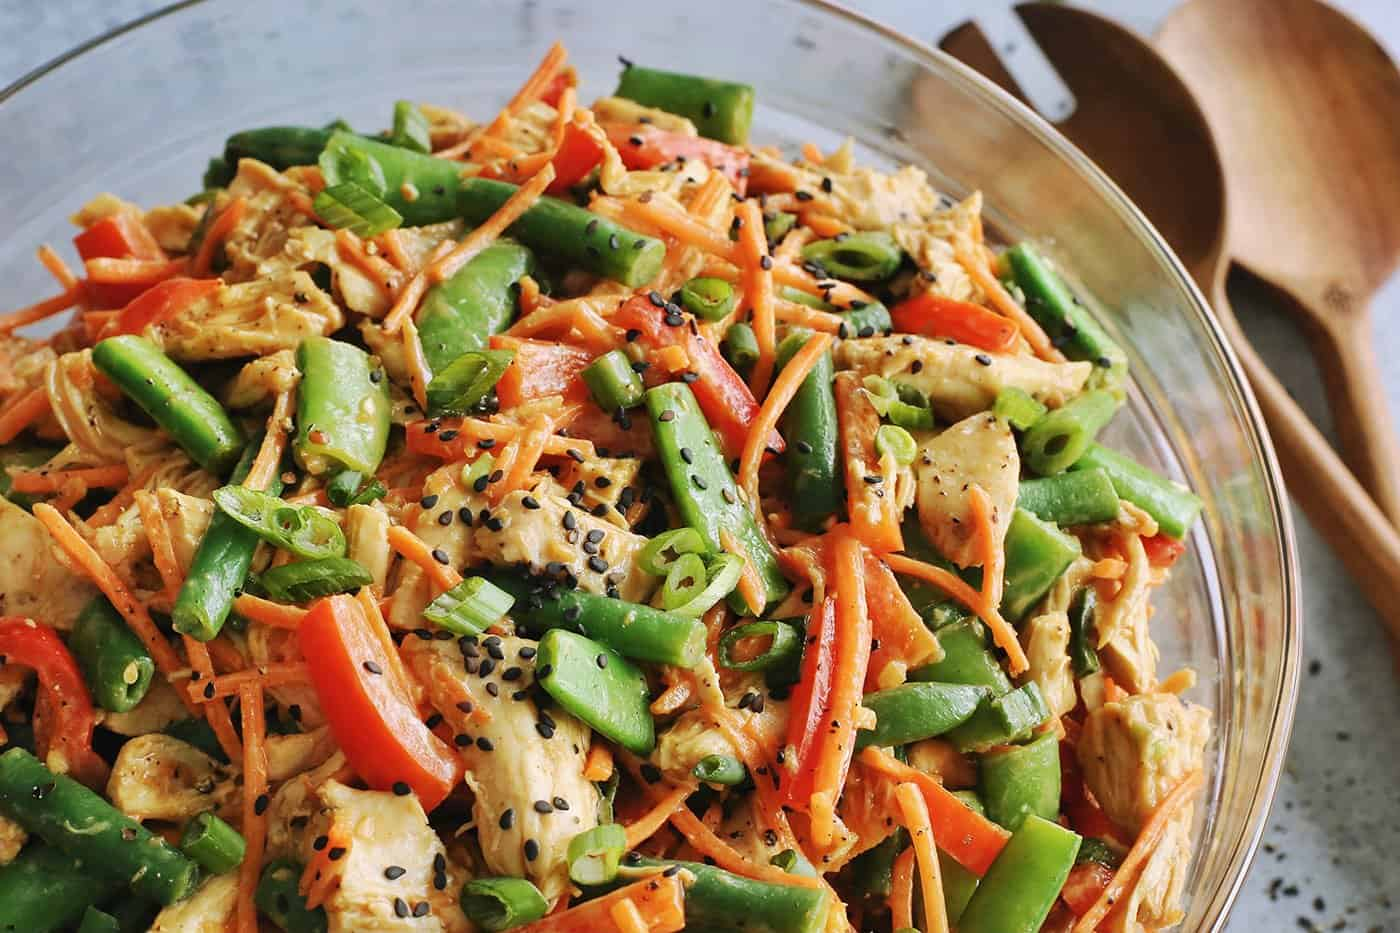 a large clear bowl of salad made of shredded chicken and chopped vegetables tossed with a peanut dressing